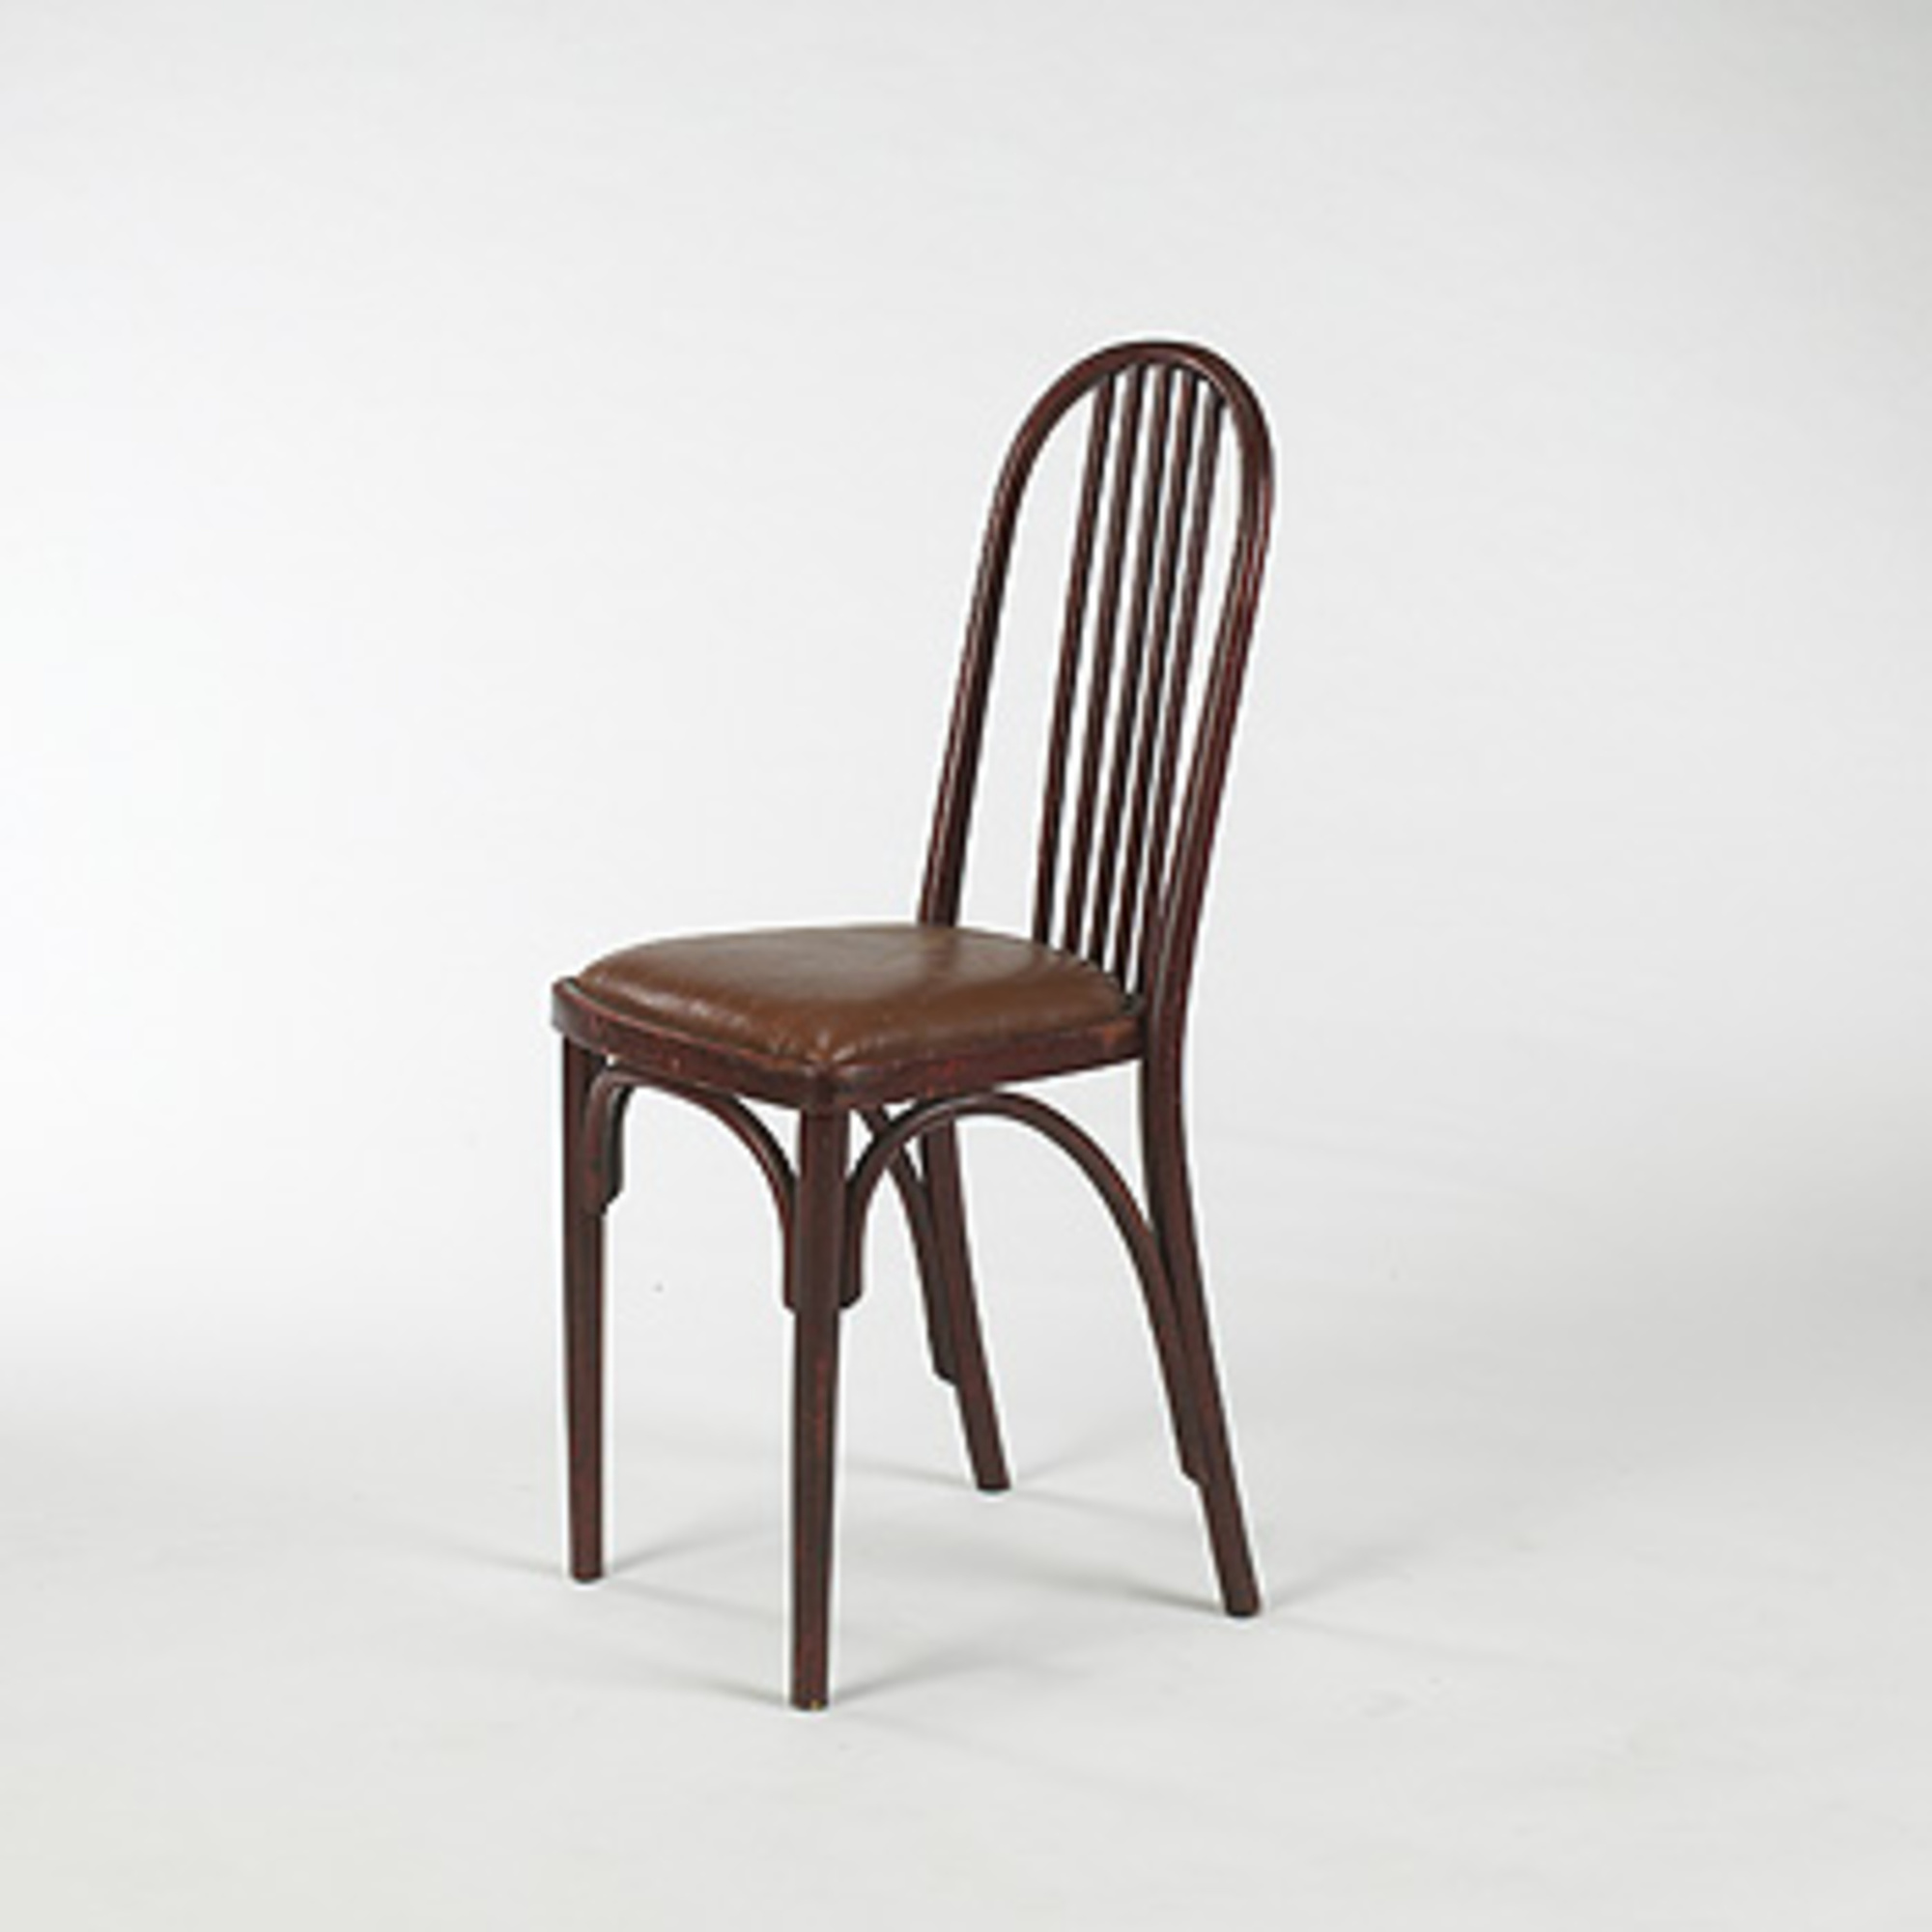 255: JOSEF HOFFMANN, Bentwood Side Chair U003c Modern Design, 20 March 2005 U003c  Auctions | Wright: Auctions Of Art And Design